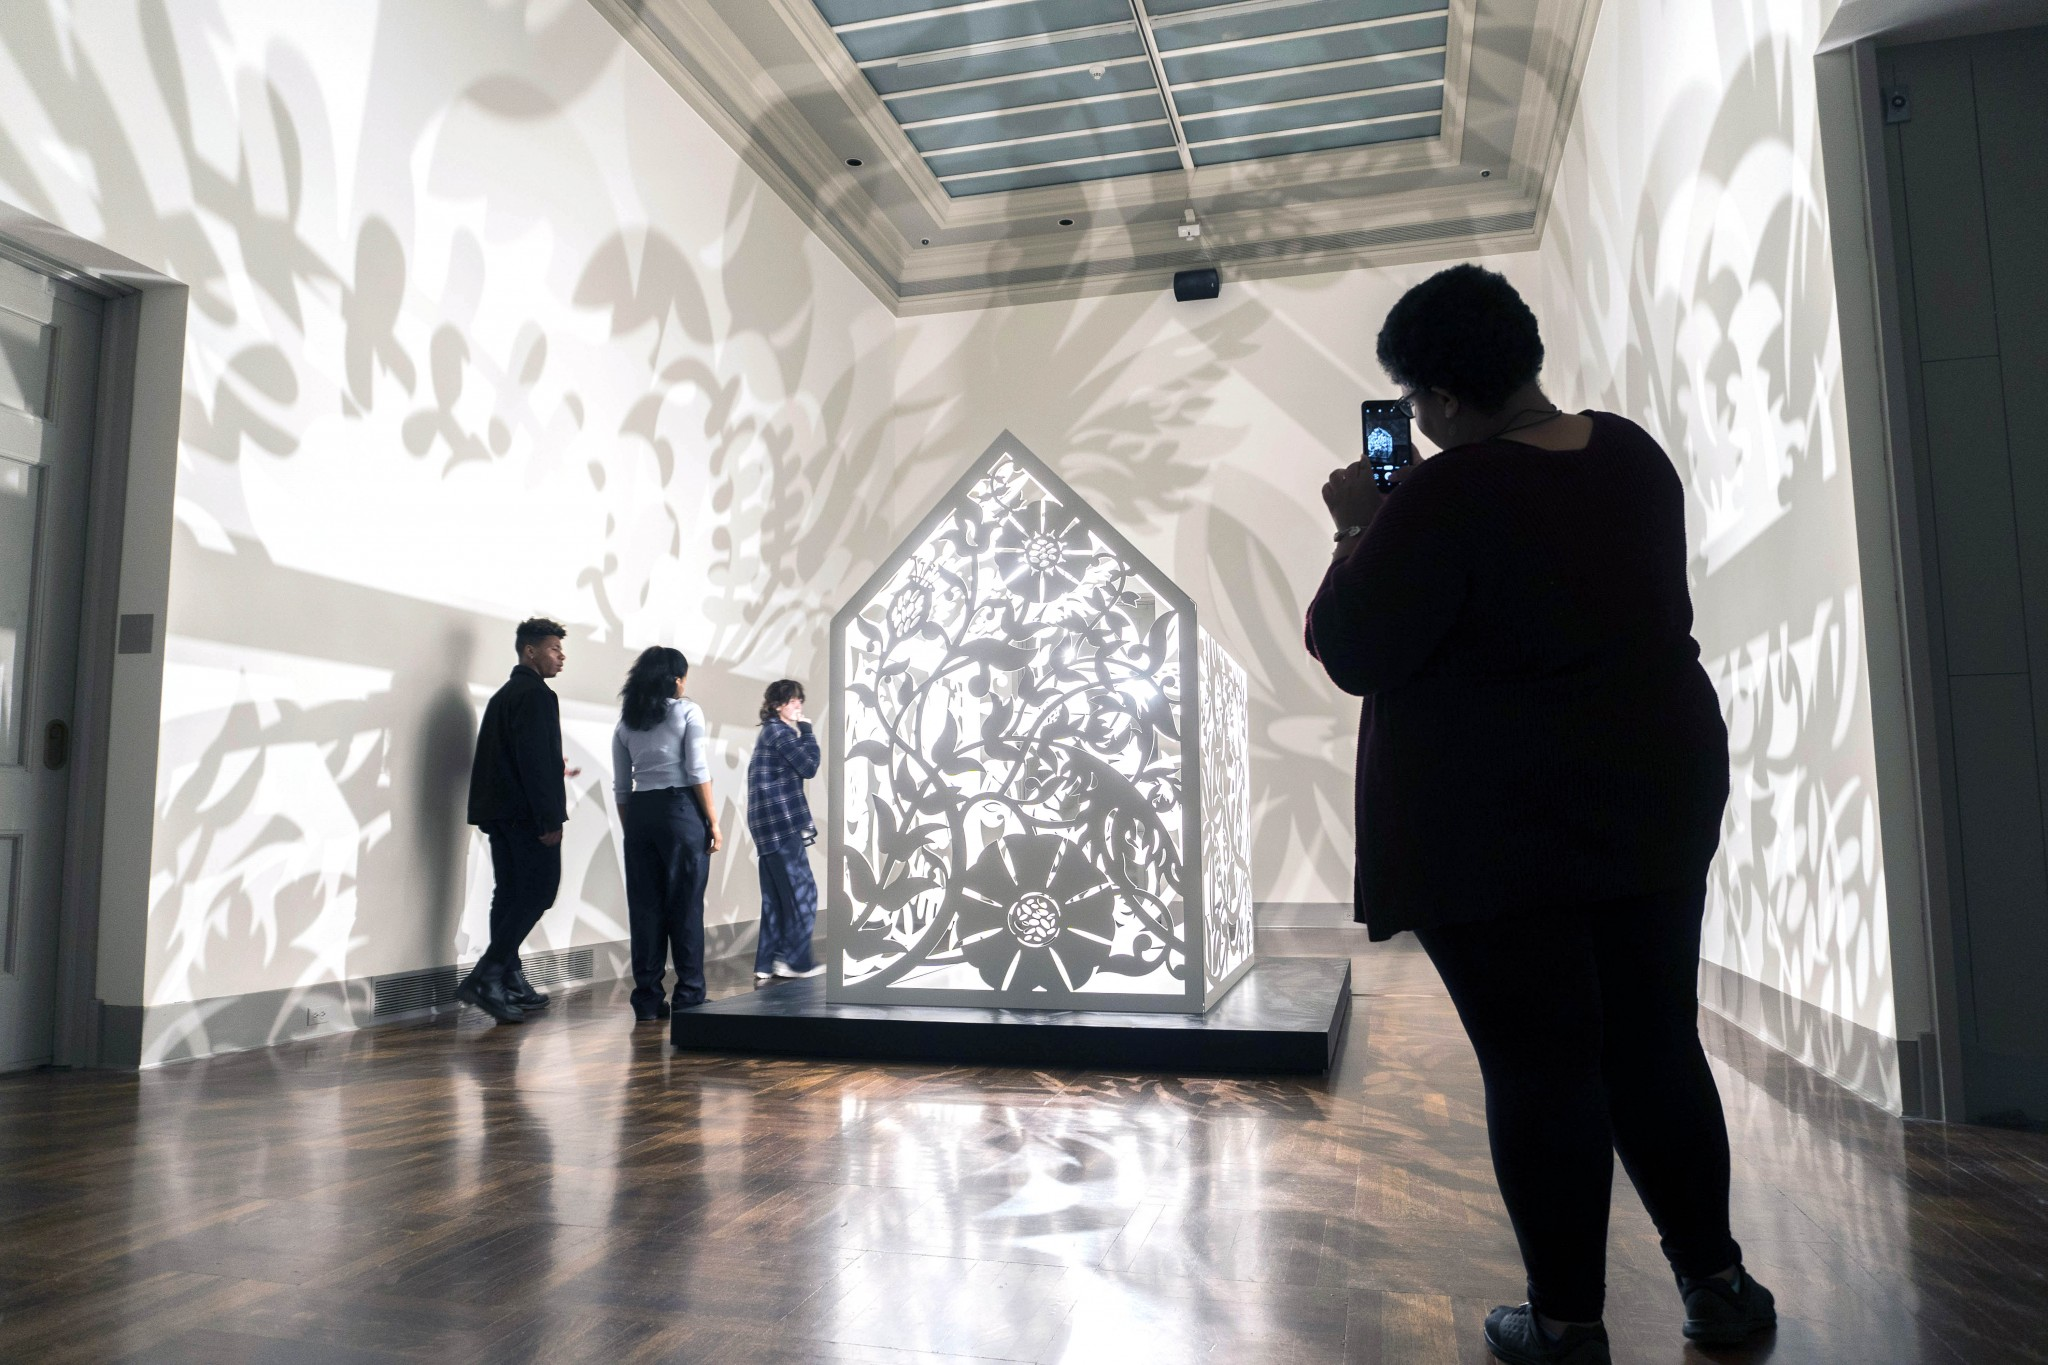 Area high school students are invited for an evening of interactive fun at (Y)our Night Friday, Nov. 15 at the Toledo Museum of Art. (Photo courtesy of the Toledo Museum of Art)